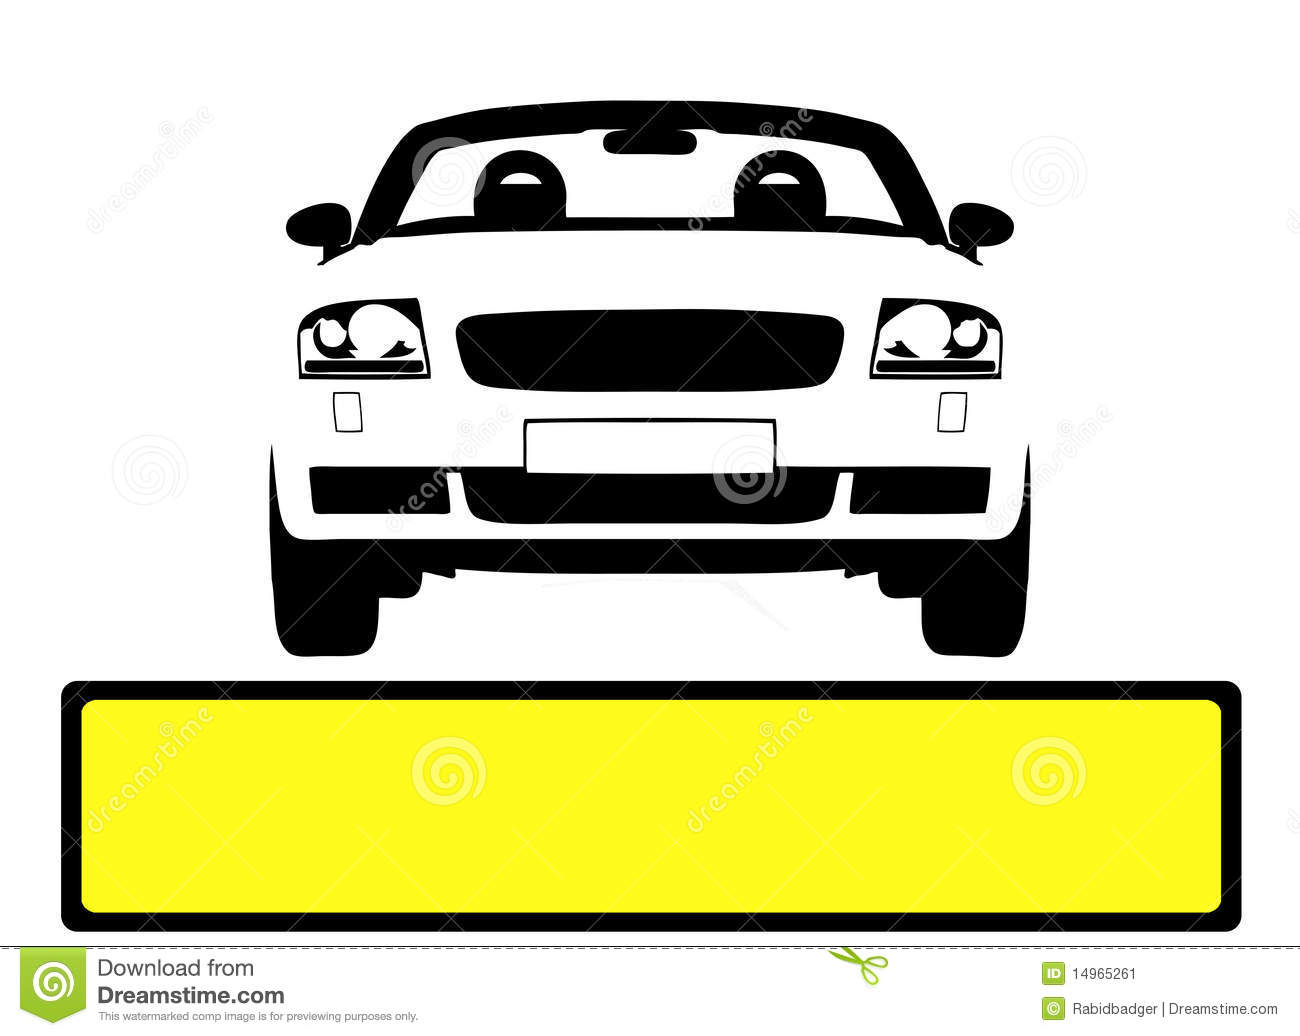 Car Licence Plate Stock Image.